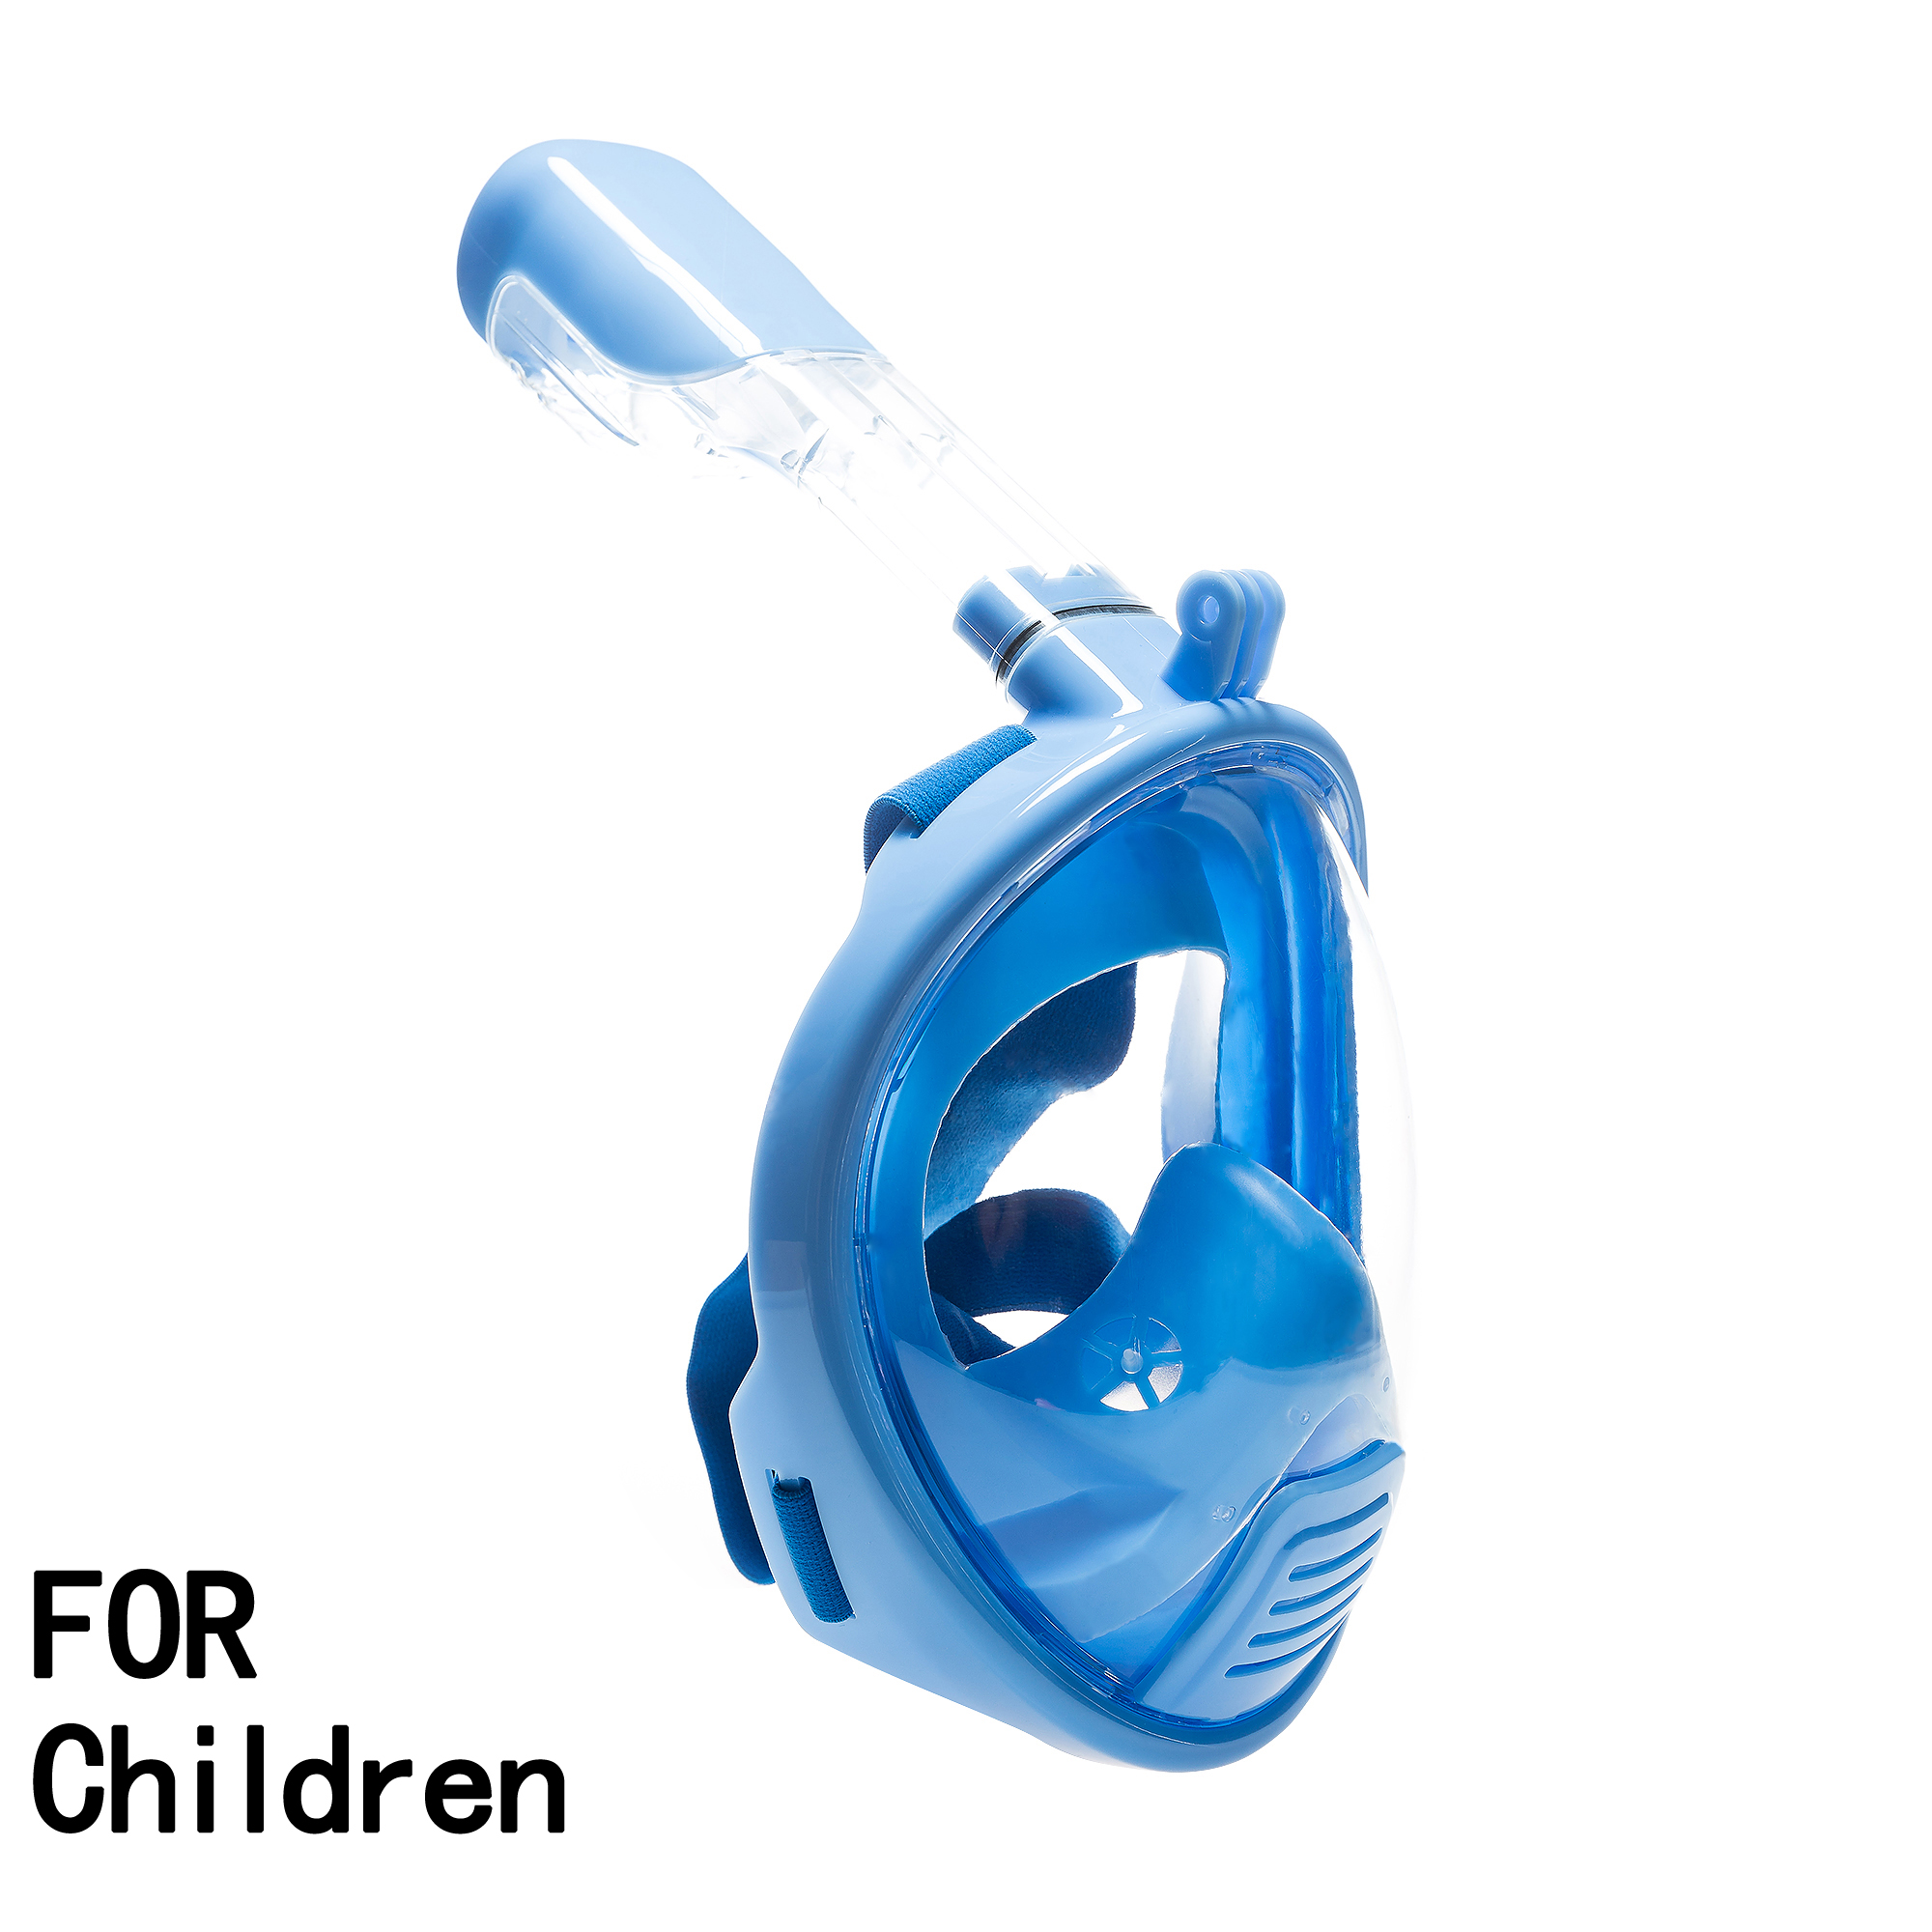 ФОТО 2017 New Thenice Full Face Snorkeling Diving Mask 180 Degree Wide Viewing Swimming Masks Liquid Silicone 6 Colors